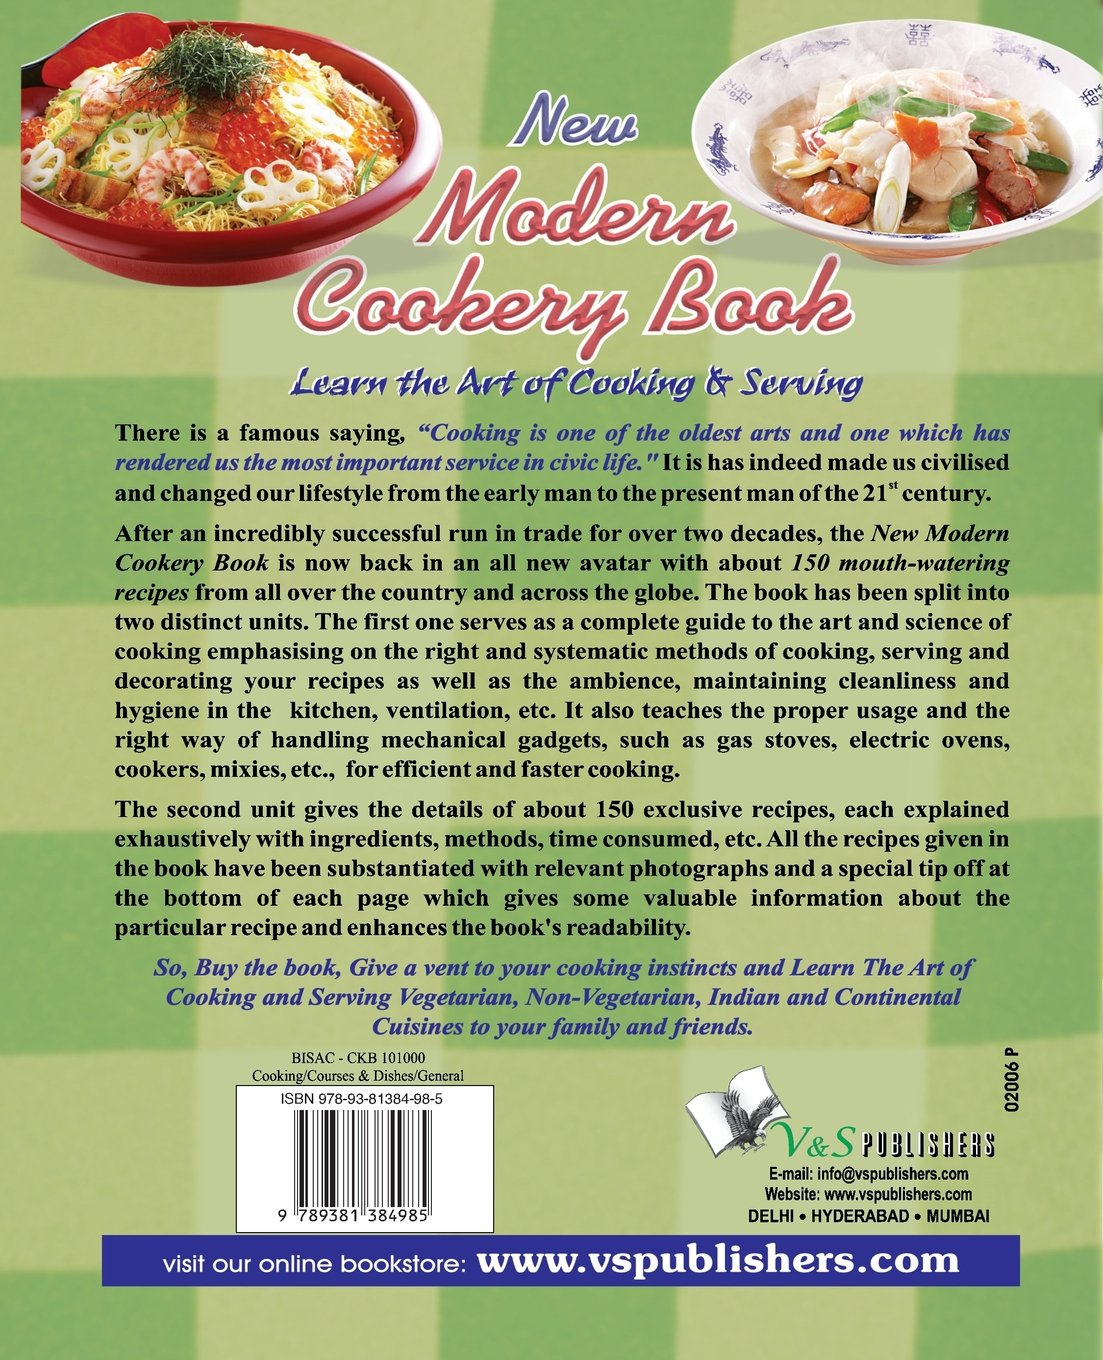 New modern cookery book asha rani vohra 9789381384985 amazon new modern cookery book asha rani vohra 9789381384985 amazon books forumfinder Images